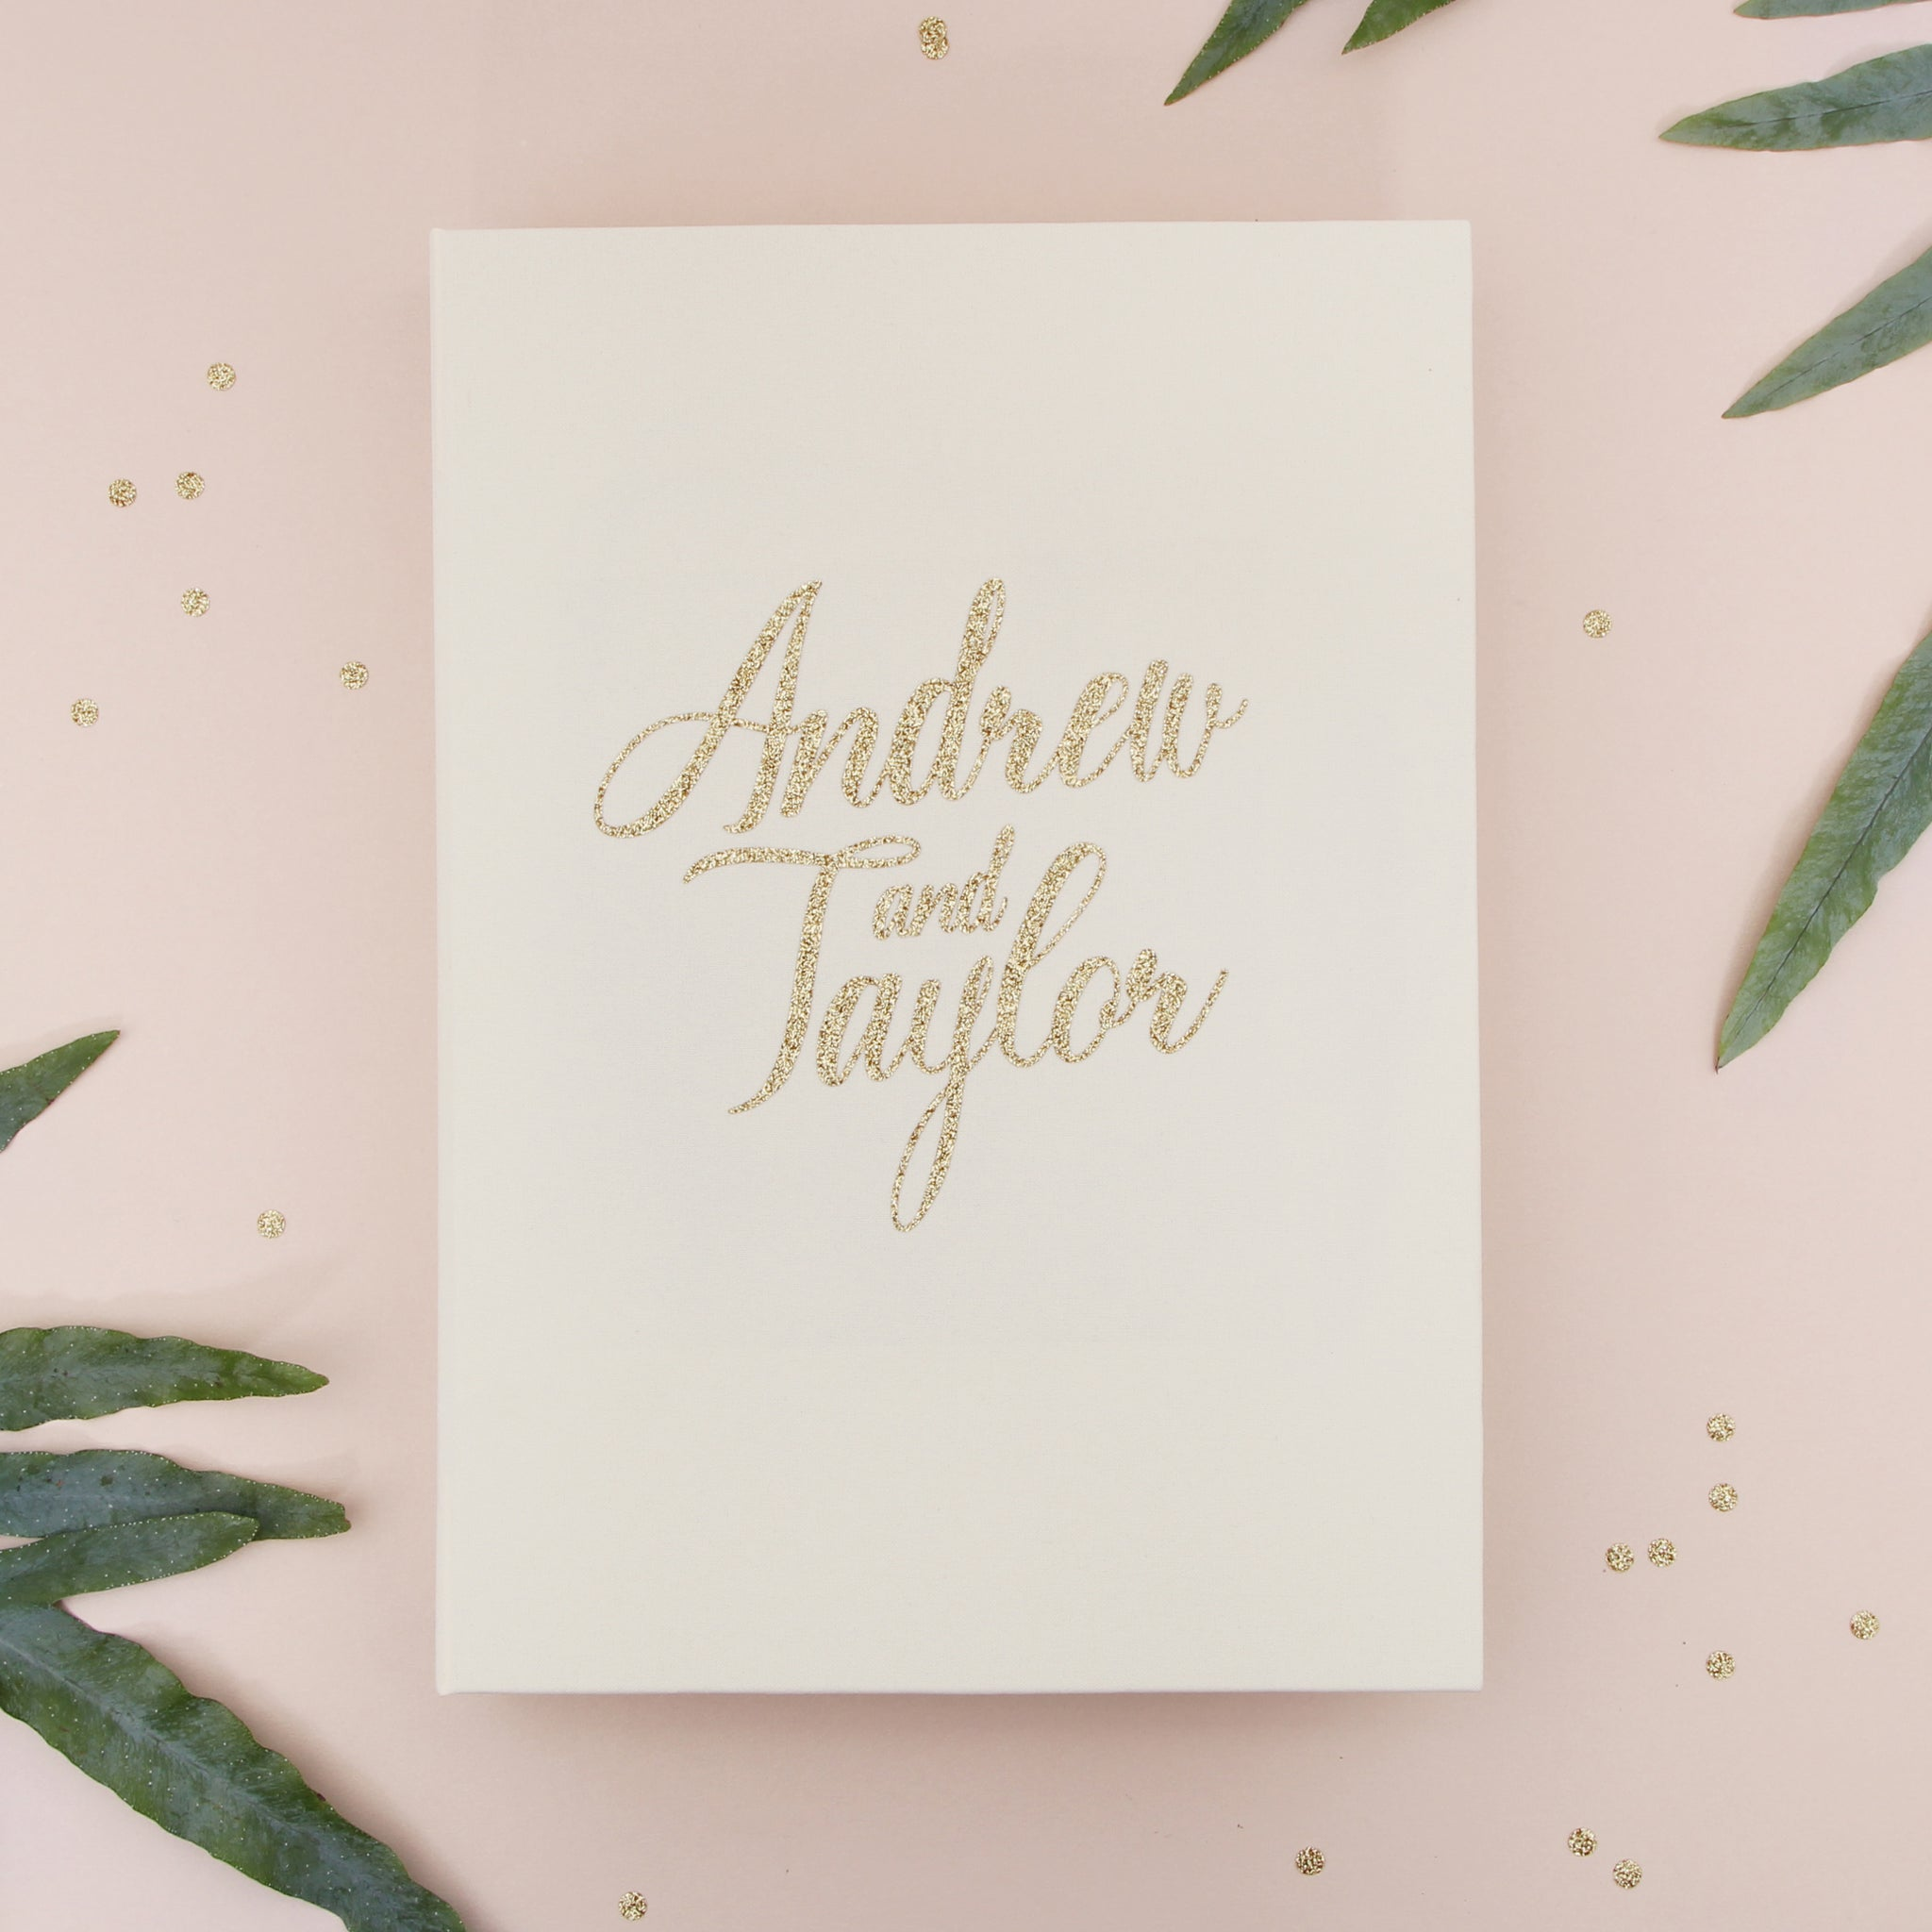 Instant Wedding Album Ivory Guest Book with Gold Glitter Lettering Instax Photo album